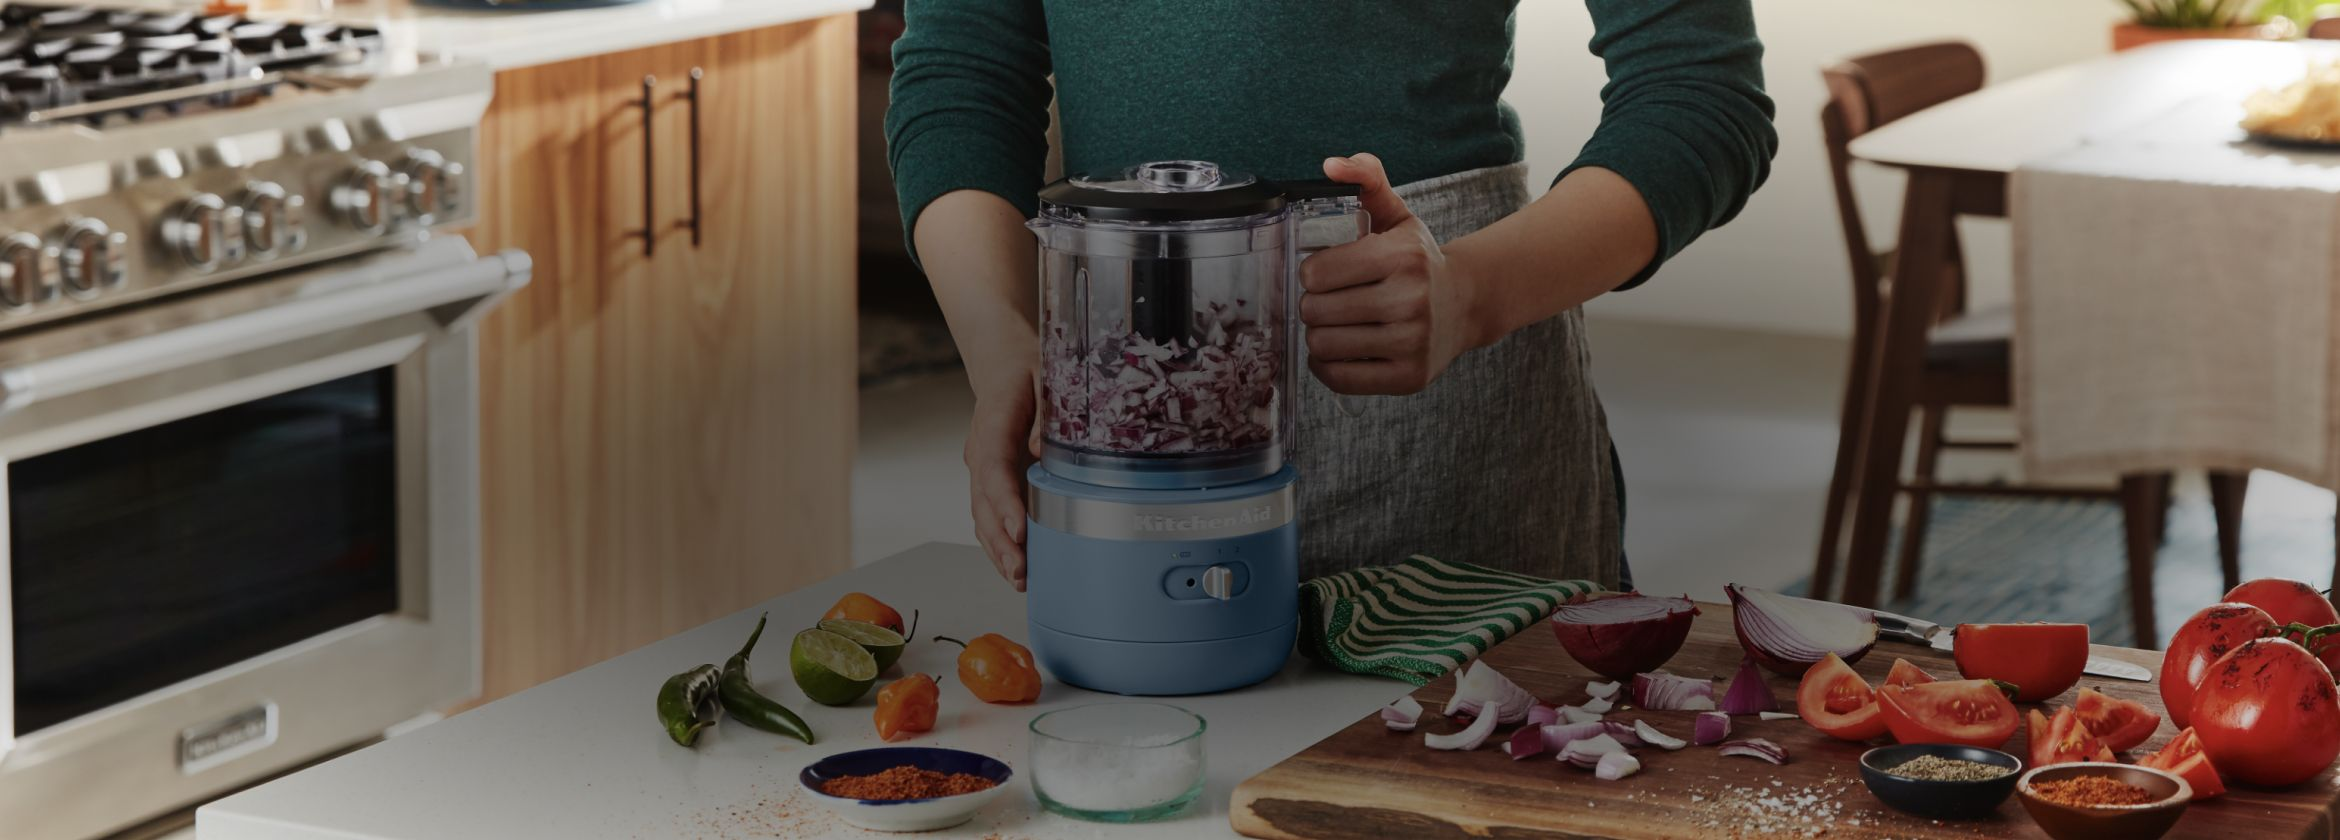 KitchenAid® Food Processor.